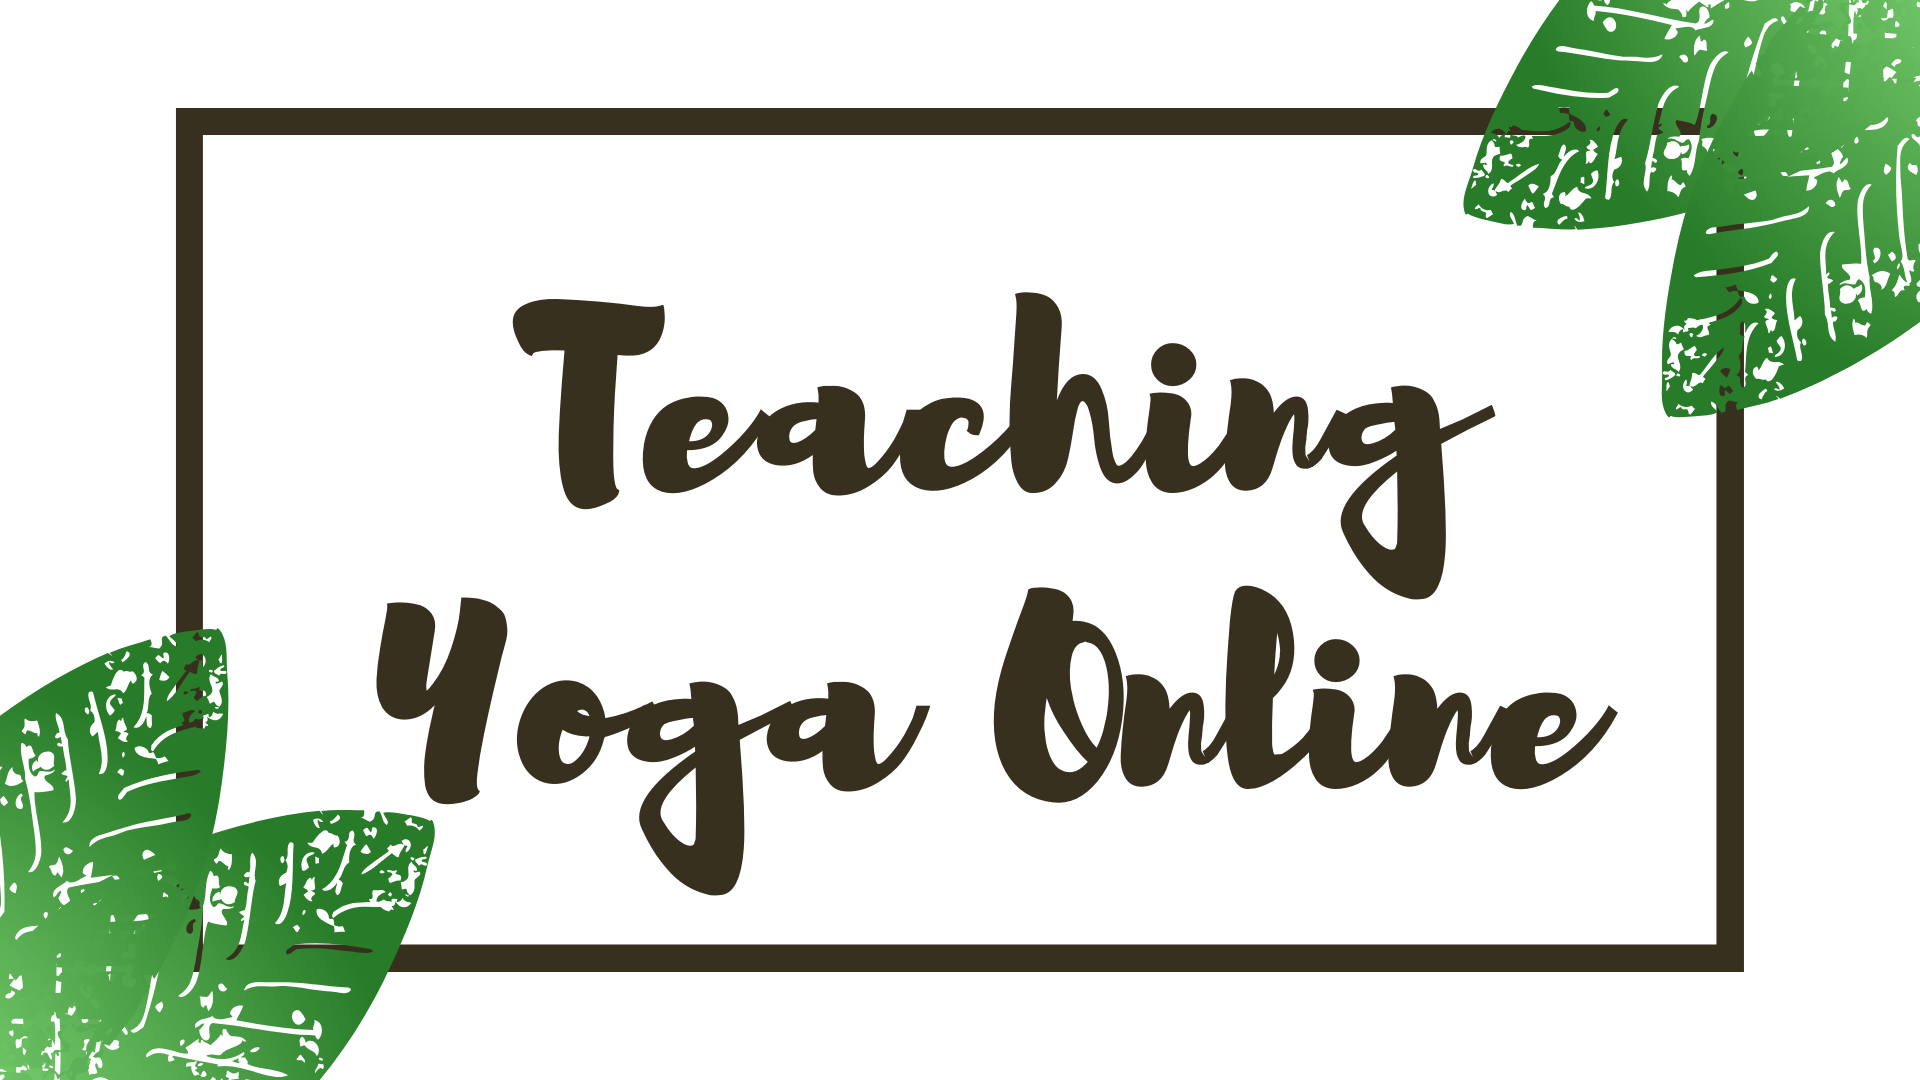 online yoga teacher in mumbai